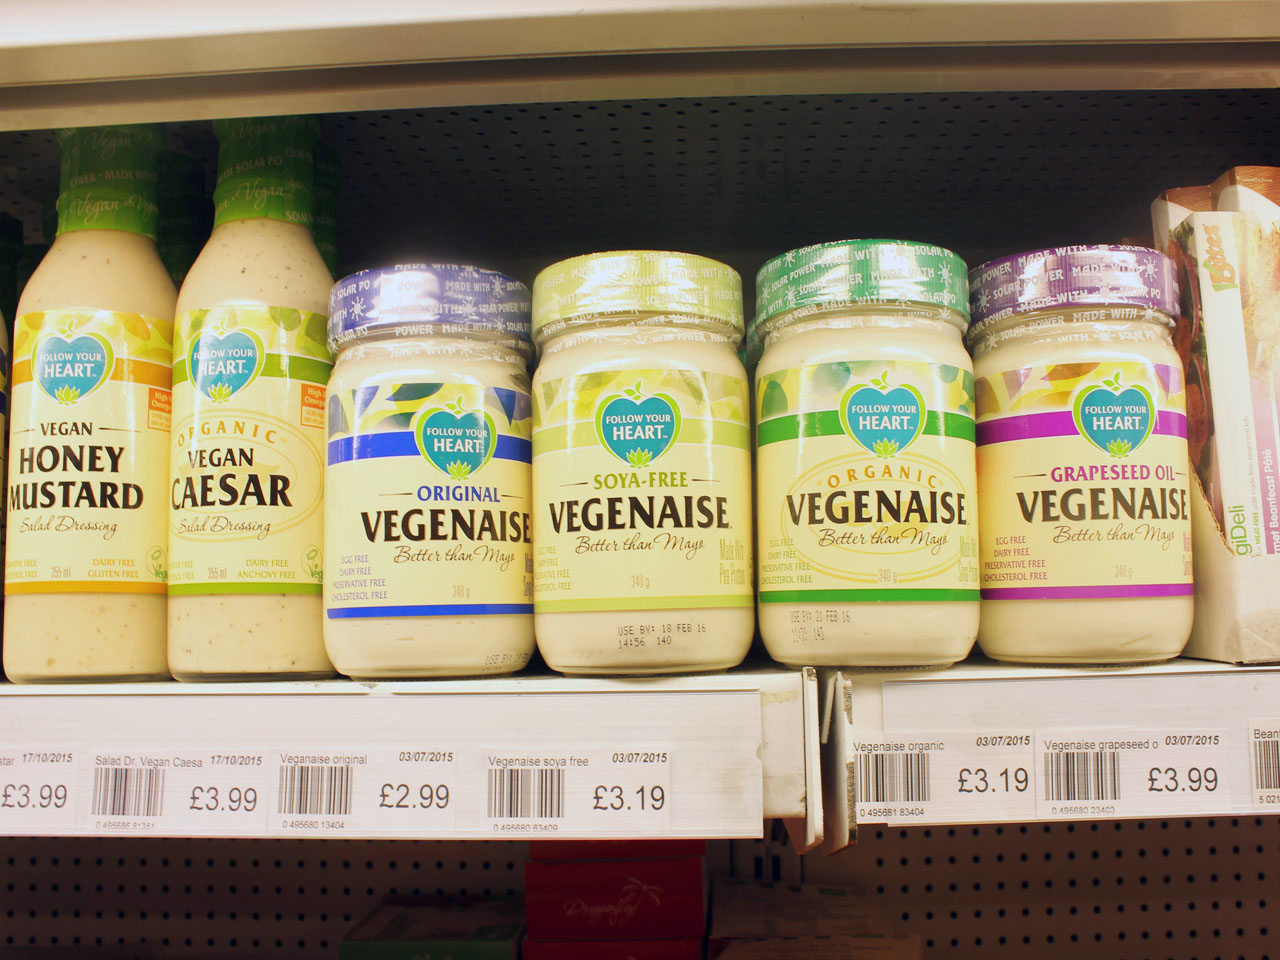 Veganuary has most successful campaign yet